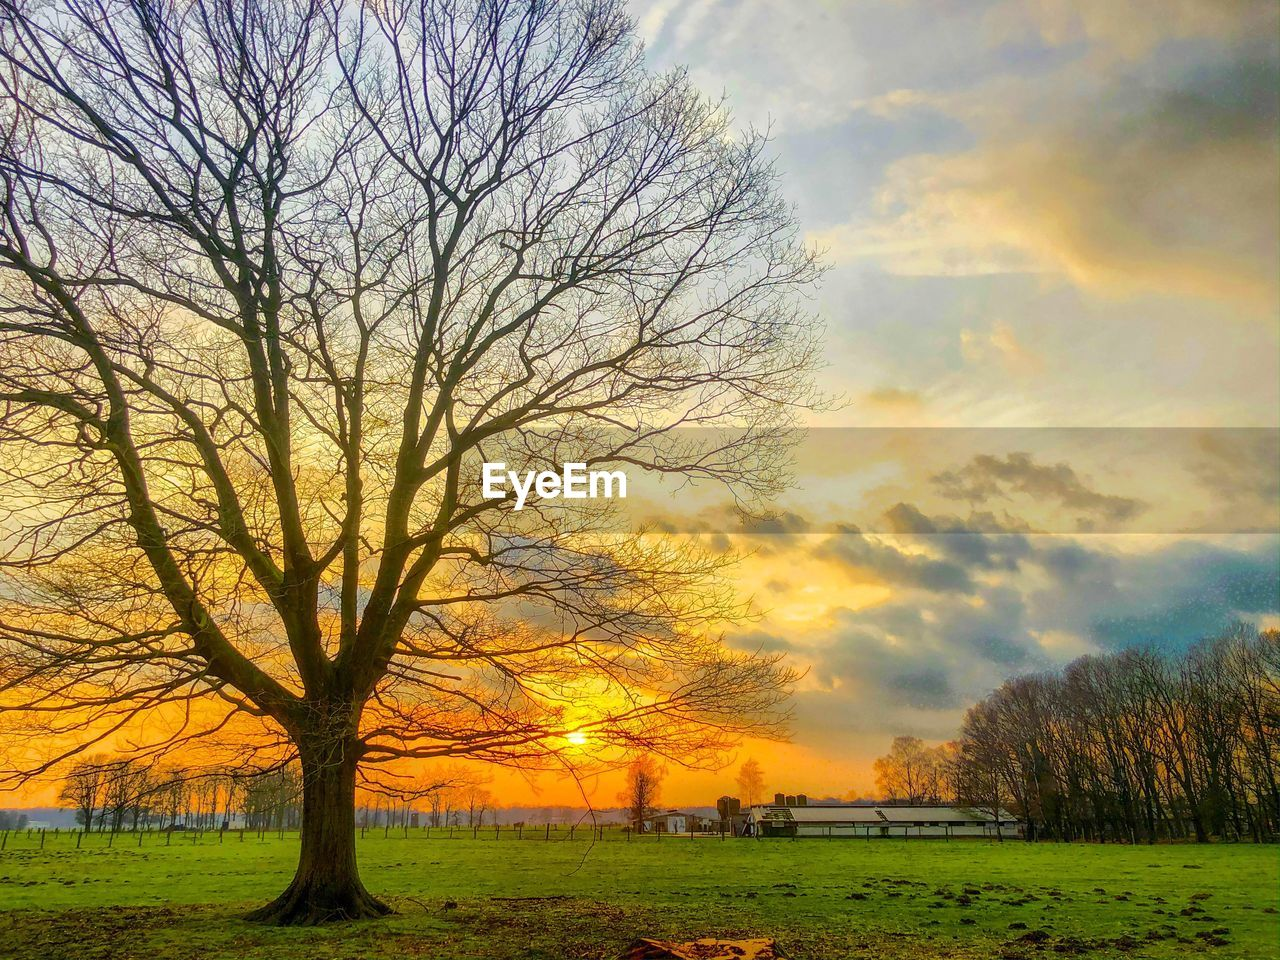 tree, sky, scenics - nature, beauty in nature, plant, sunset, cloud - sky, tranquil scene, landscape, tranquility, environment, field, bare tree, nature, land, no people, orange color, non-urban scene, grass, branch, outdoors